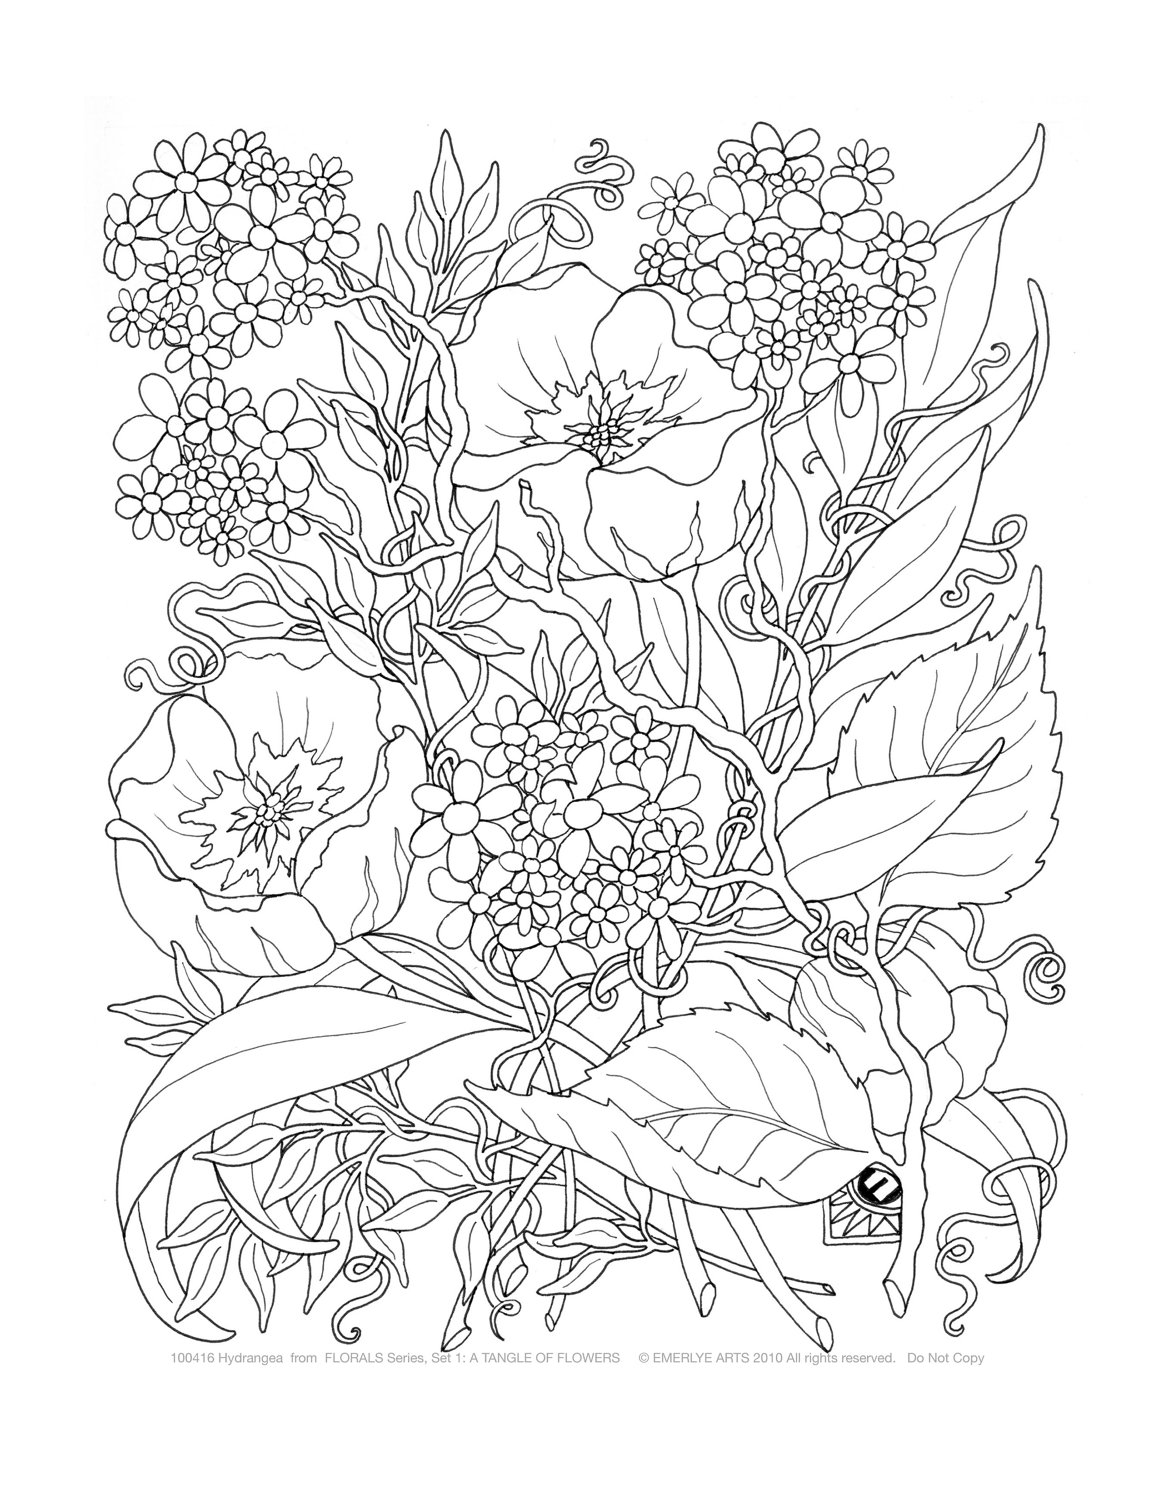 Printable Nature Coloring Pages For Adults At Getdrawings Com Free